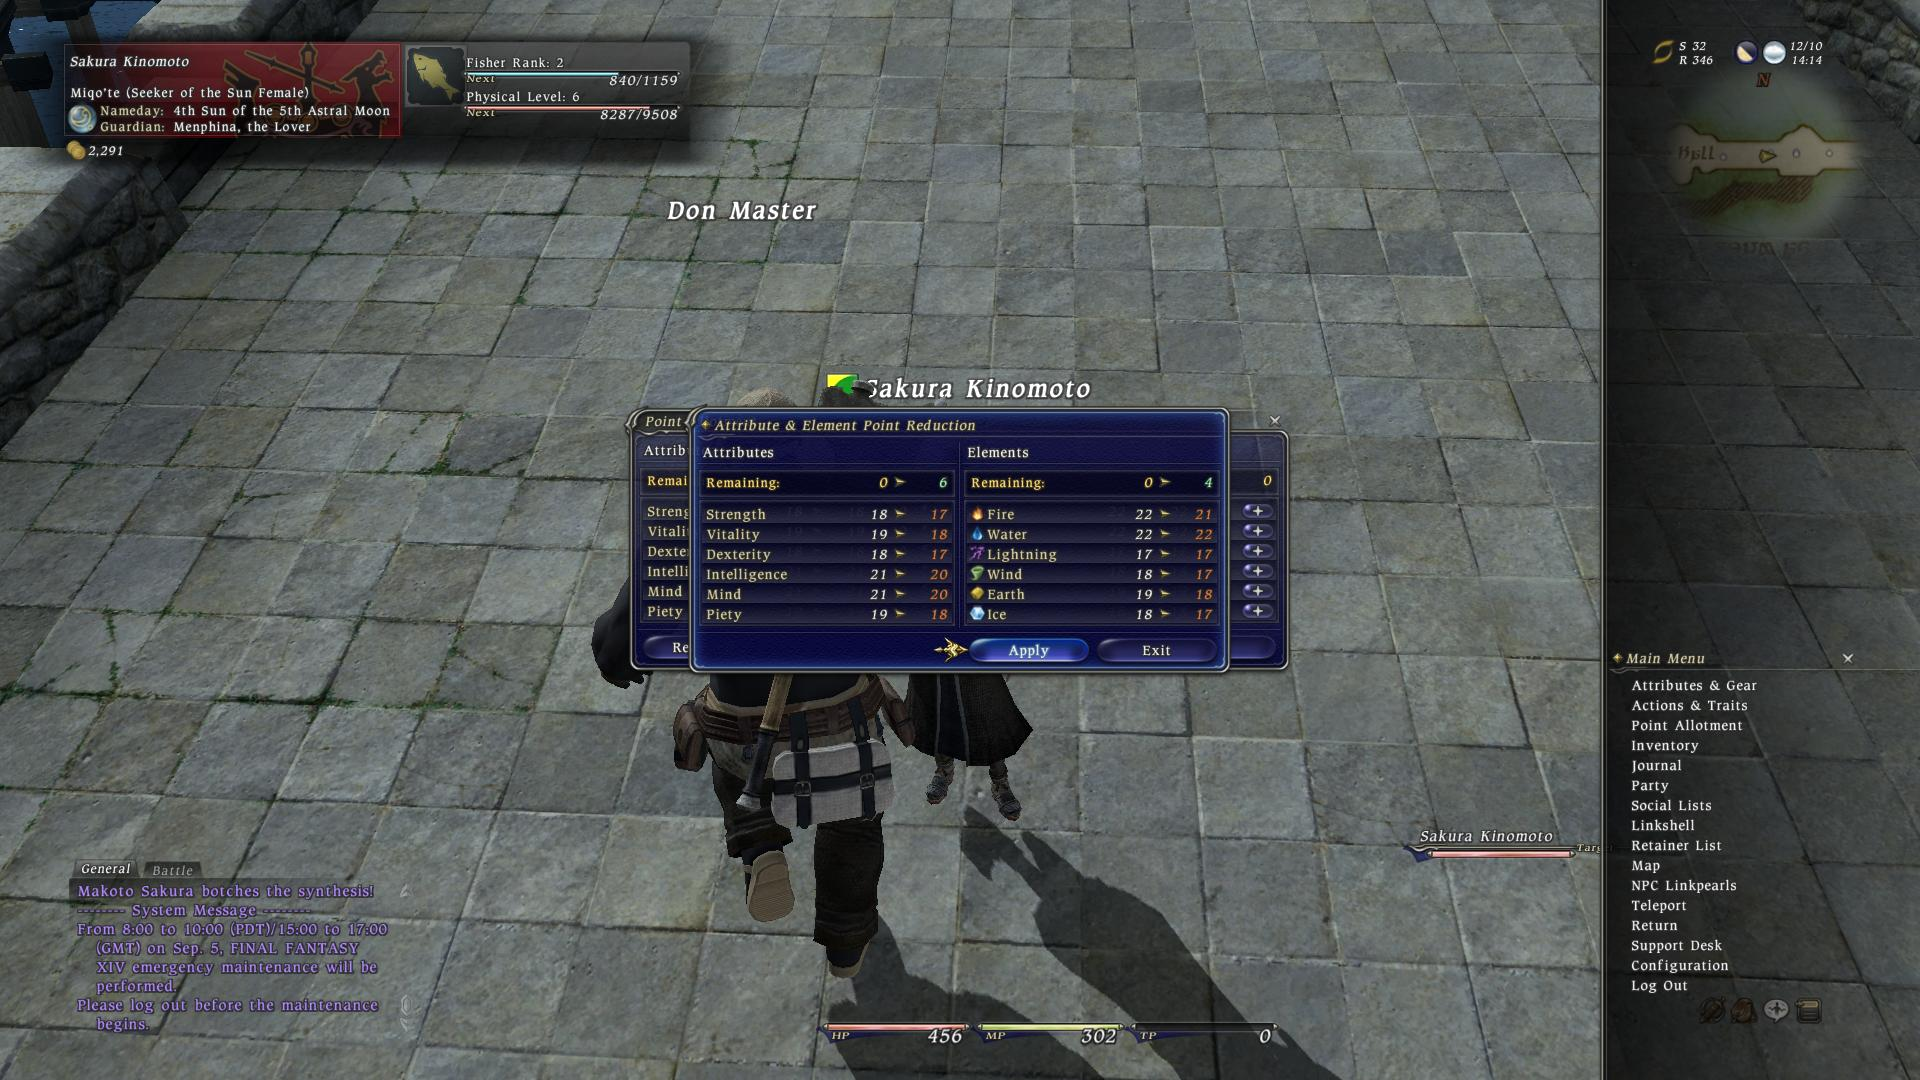 Final Fantasy XIV Daily Digest #2 - 07